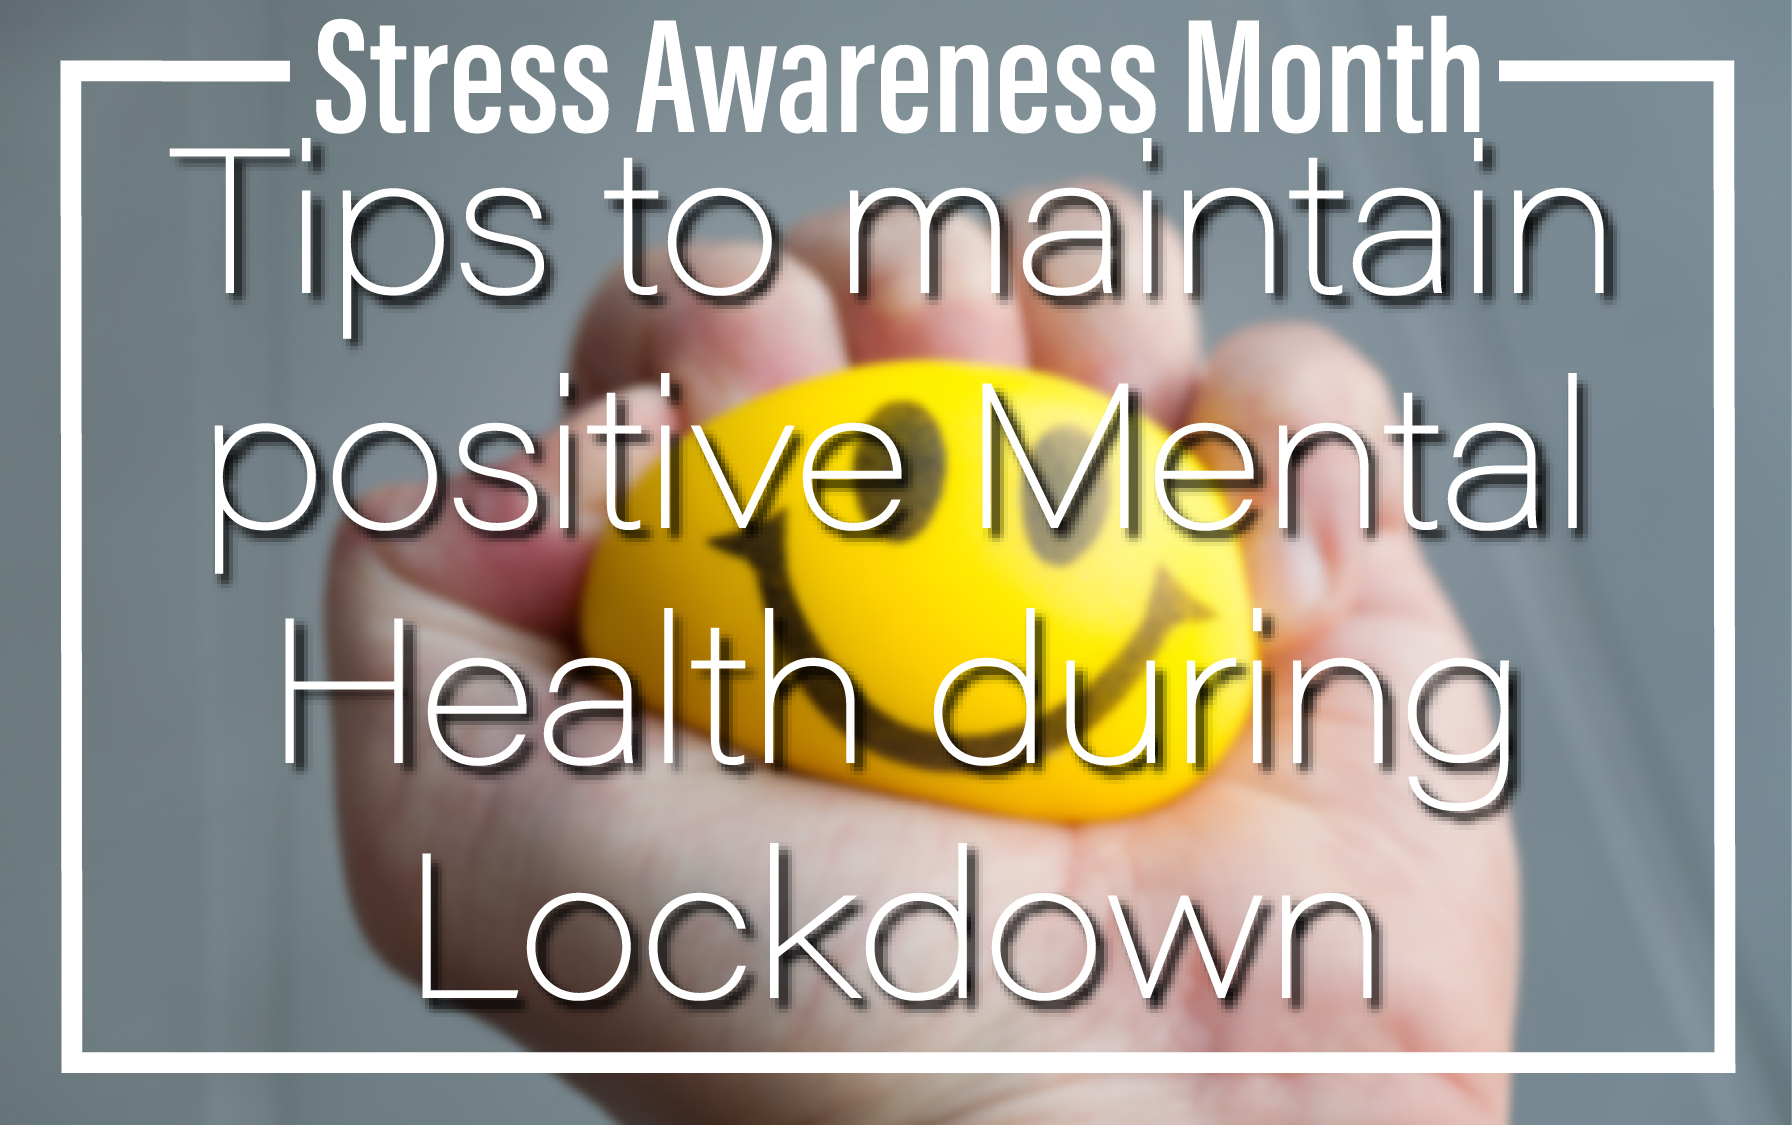 Tips to maintain positive mental health during lockdown